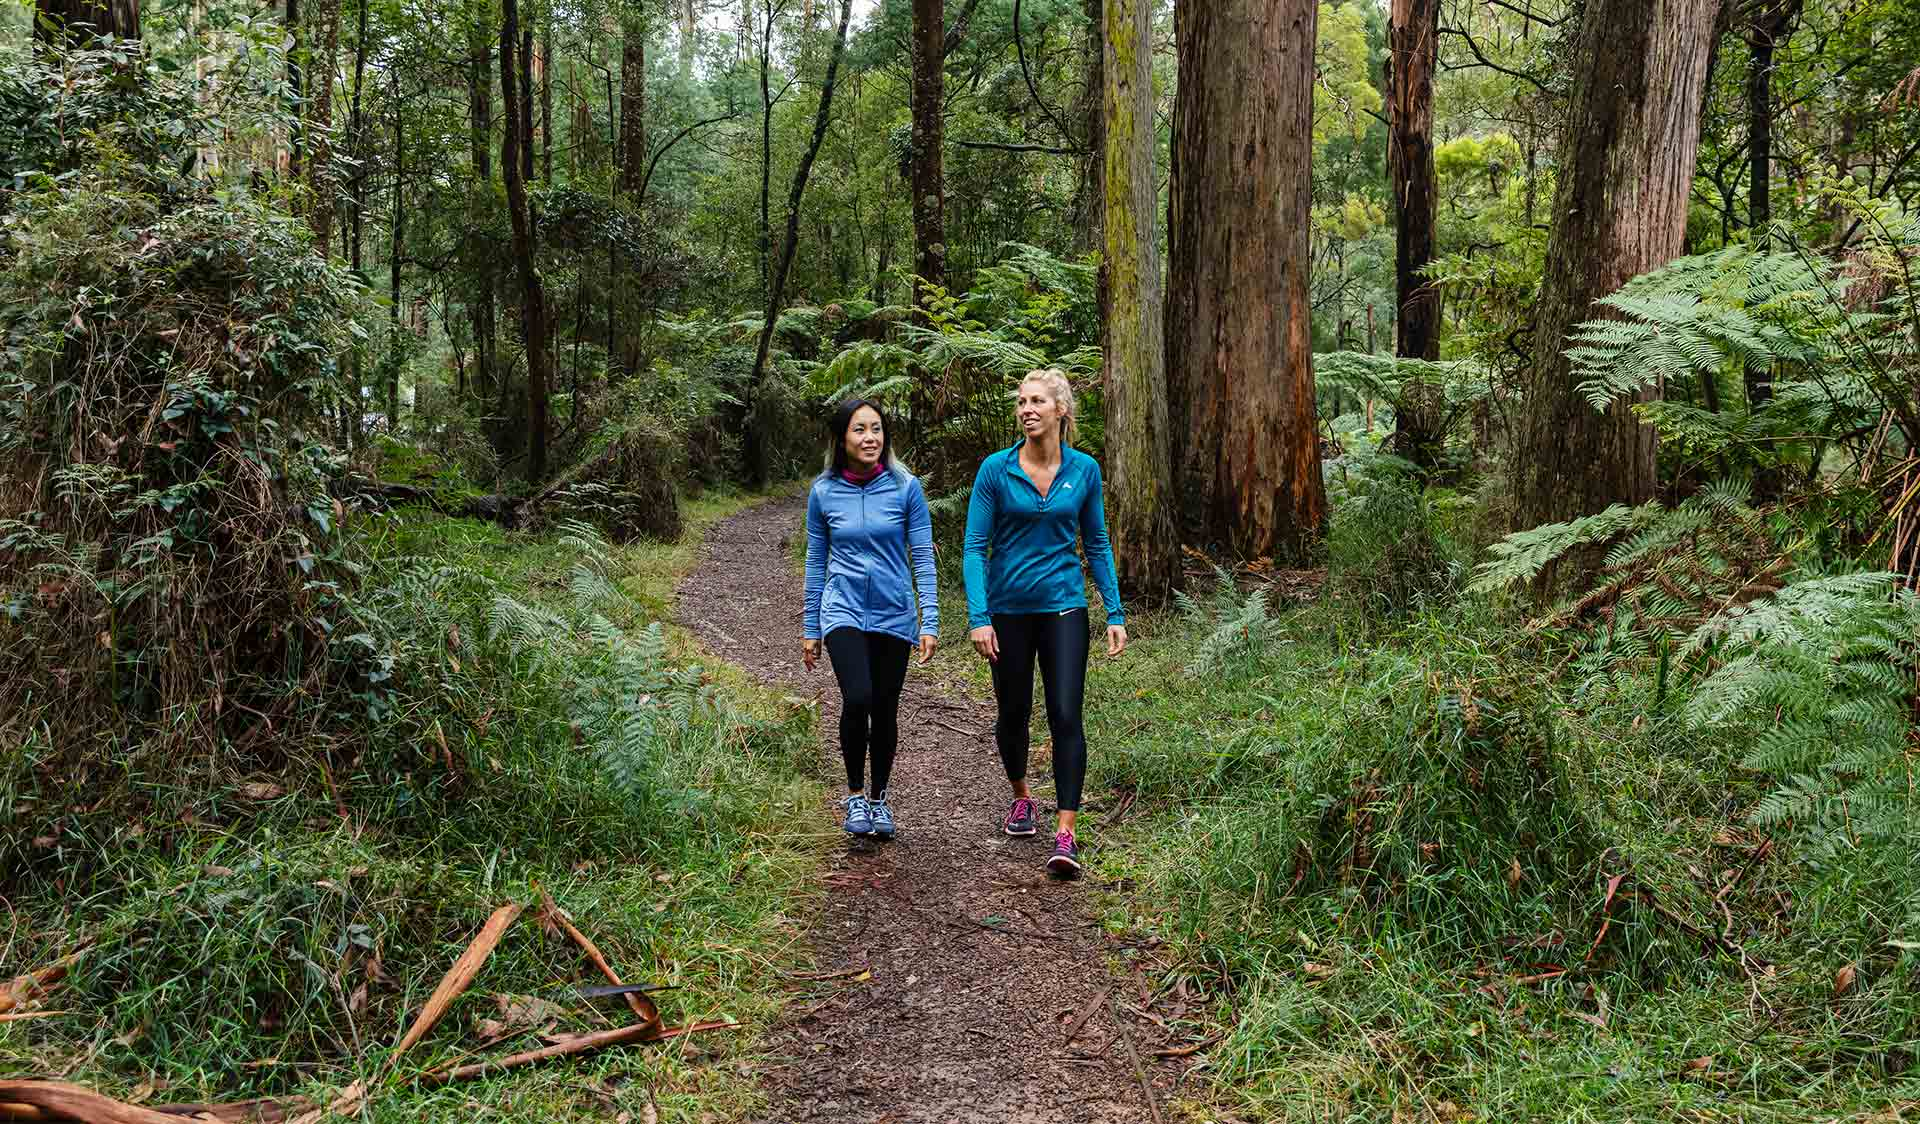 Two women in activewear follow a path through tall mountain ash trees.